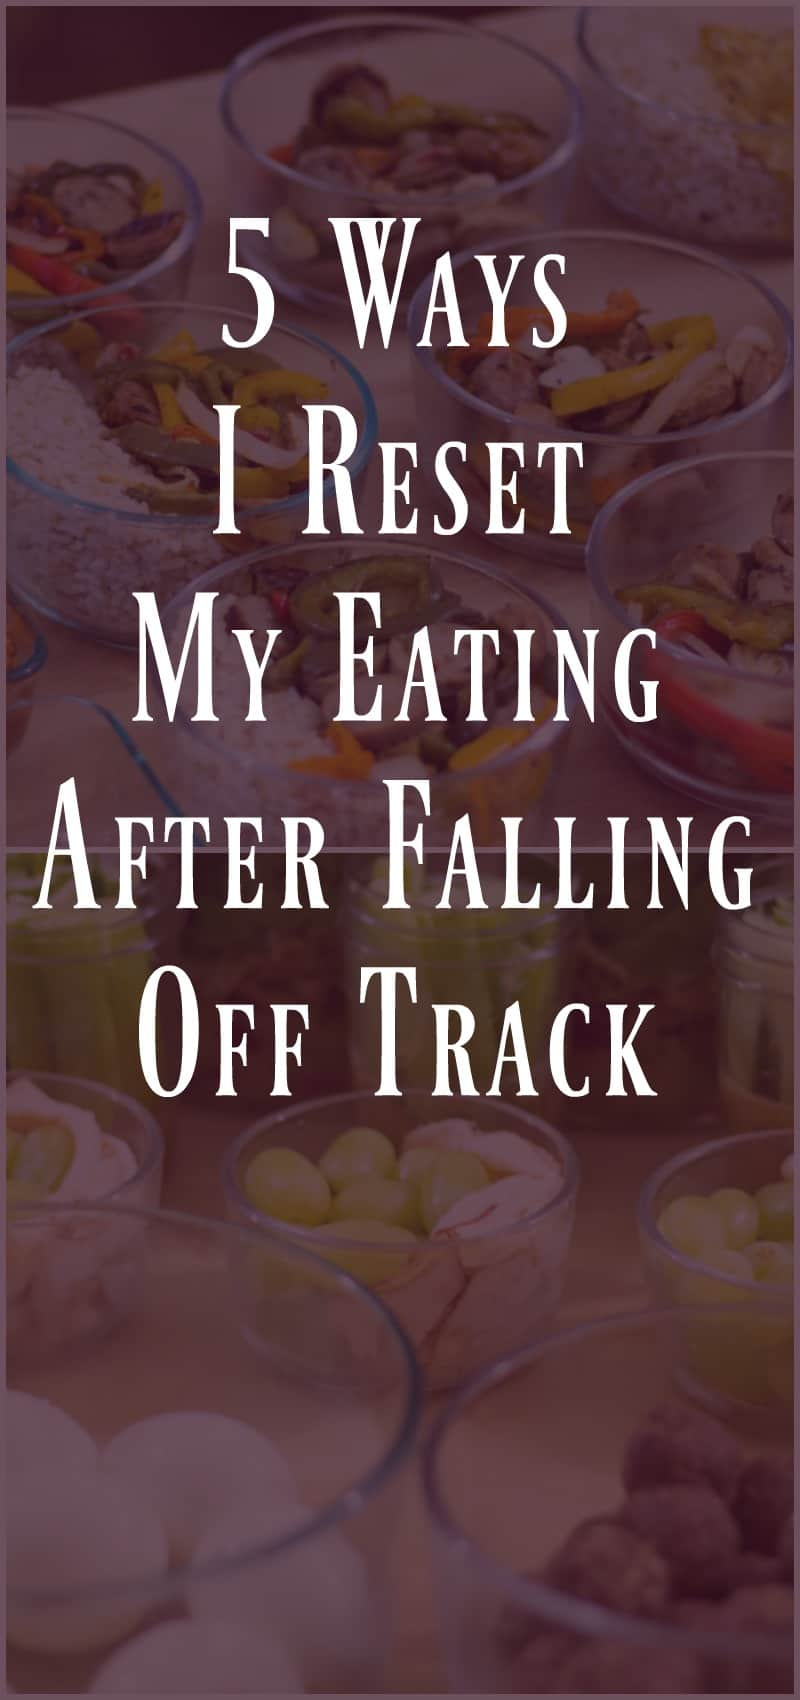 5 Ways I Reset My Eating After Getting Off Track